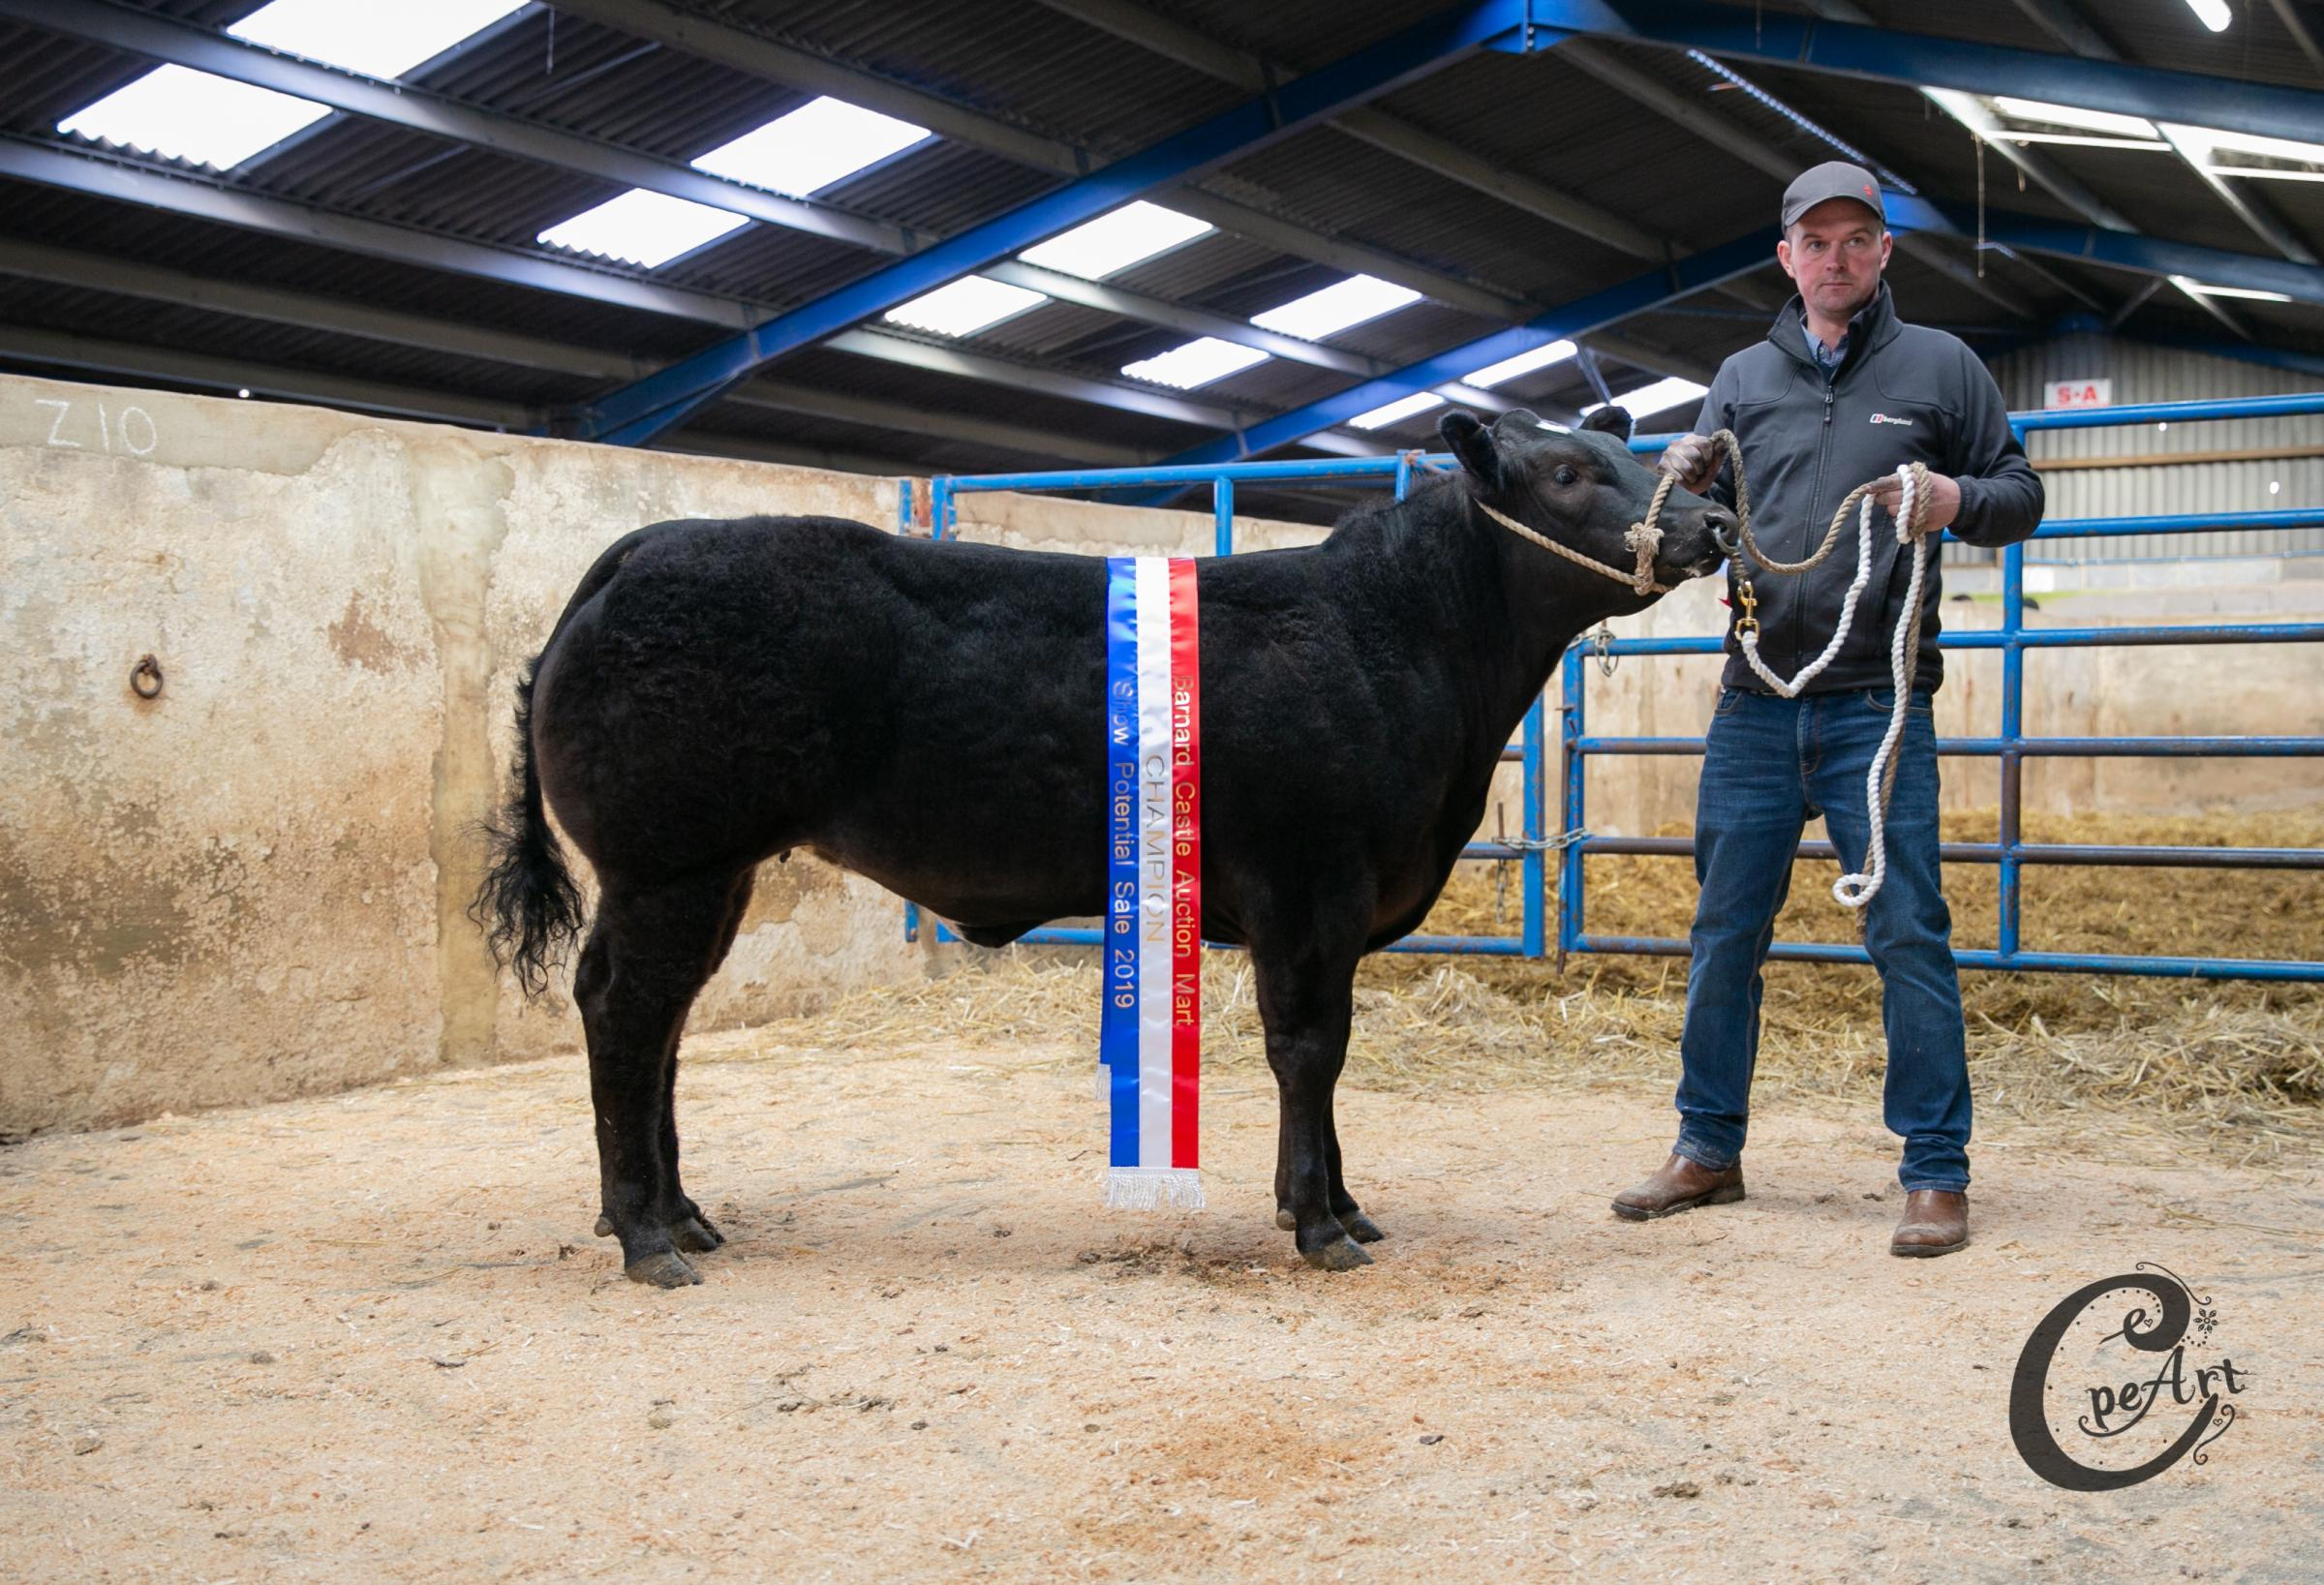 Limited Edition sold for a centre record of £6600 for Valley Farm